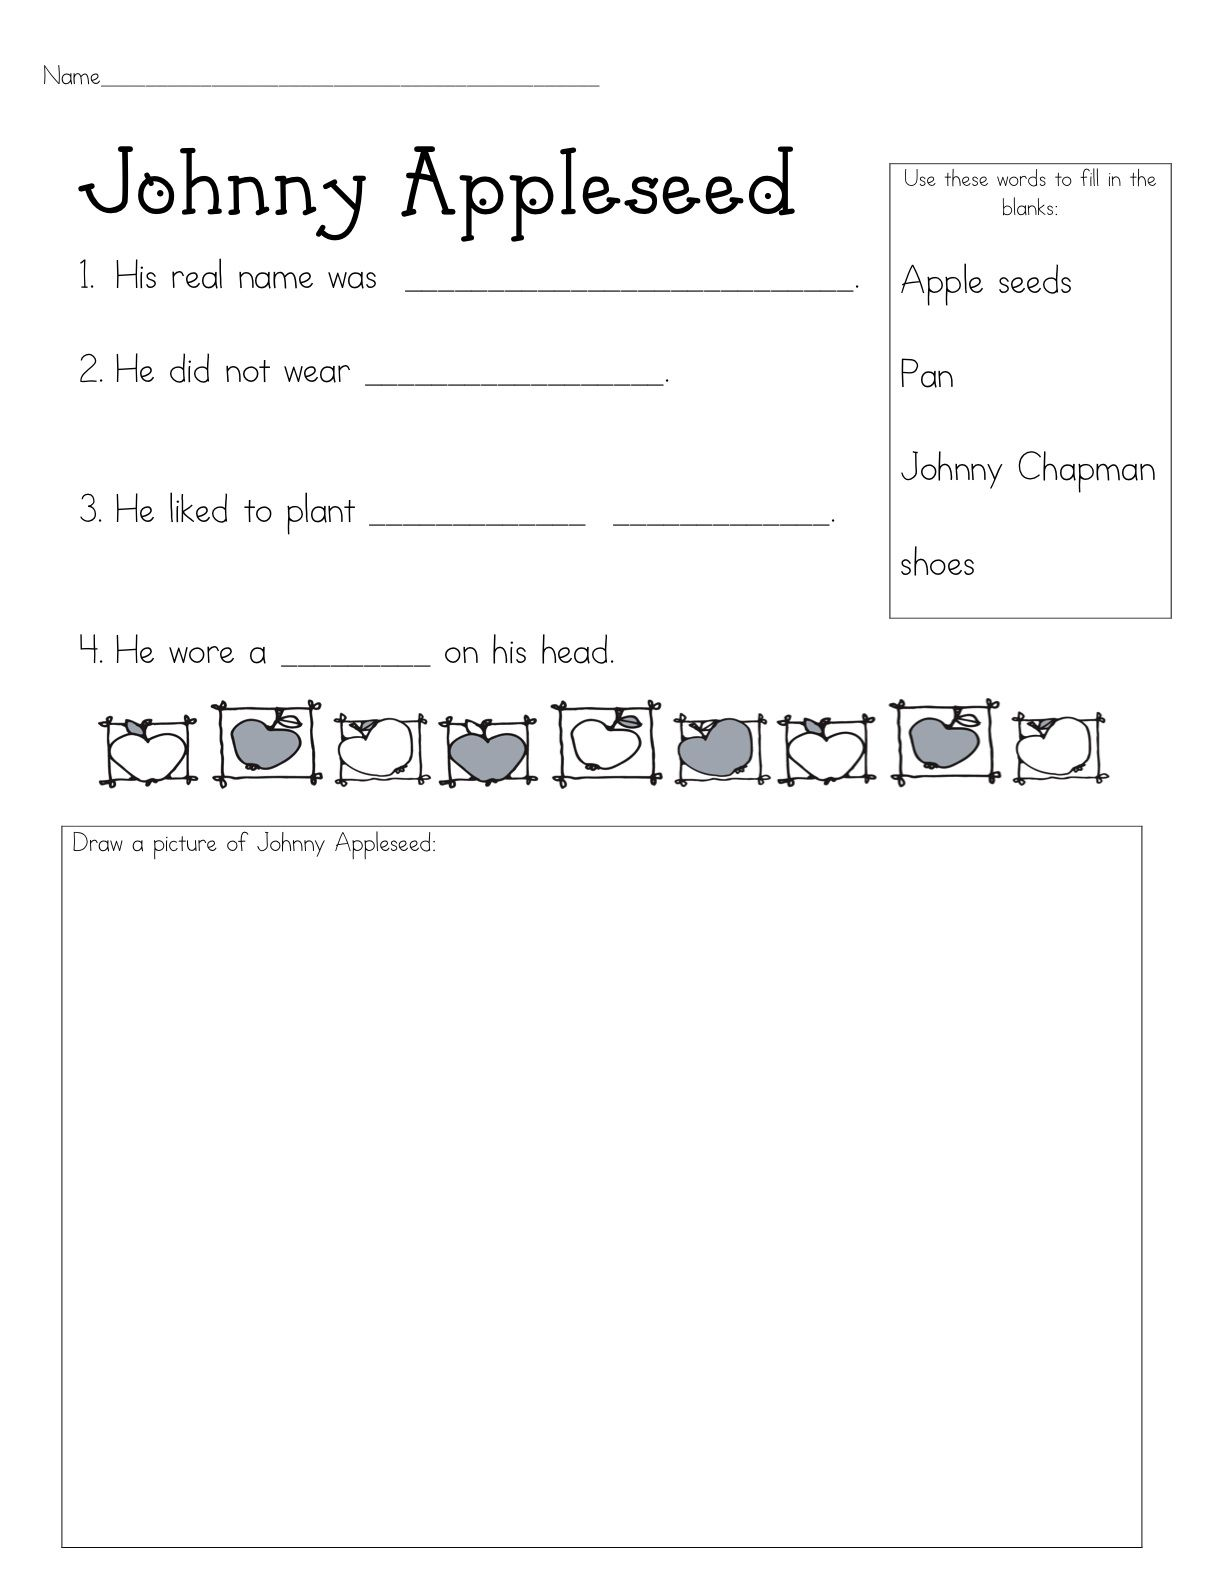 worksheet Johnny Appleseed Worksheets 17 images about johnny appleseed on pinterest vocabulary worksheets apple unit and opinion writing